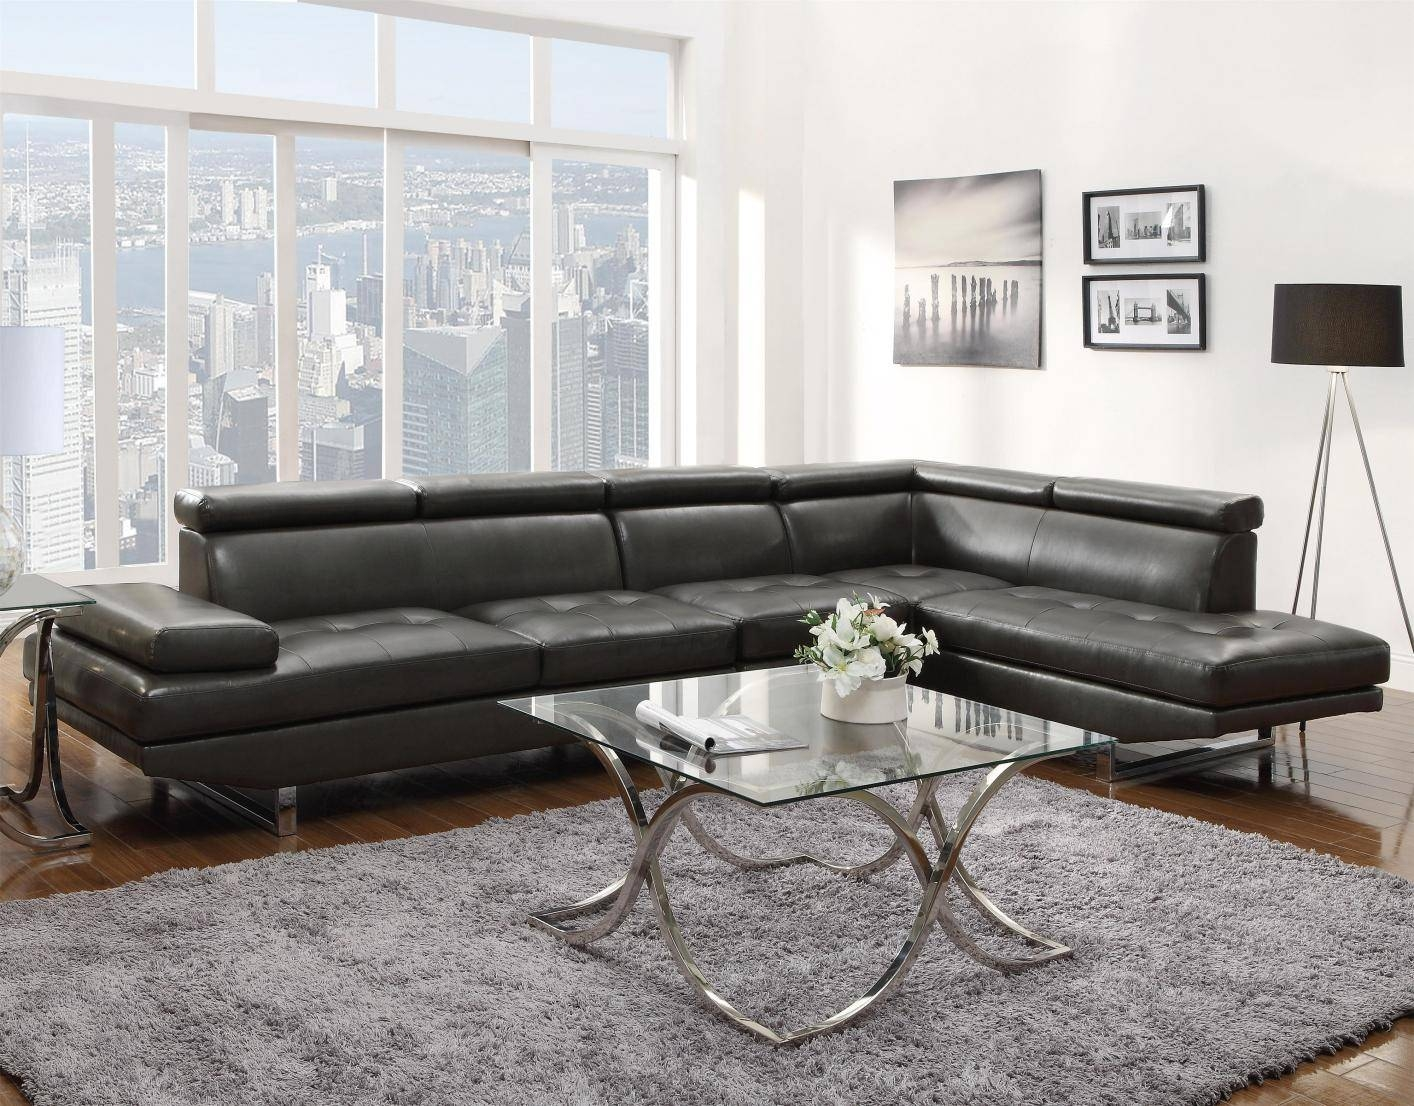 Grey Leather Sectional Sofa - Steal-A-Sofa Furniture Outlet Los intended for Gray Leather Sectional Sofas (Image 17 of 30)